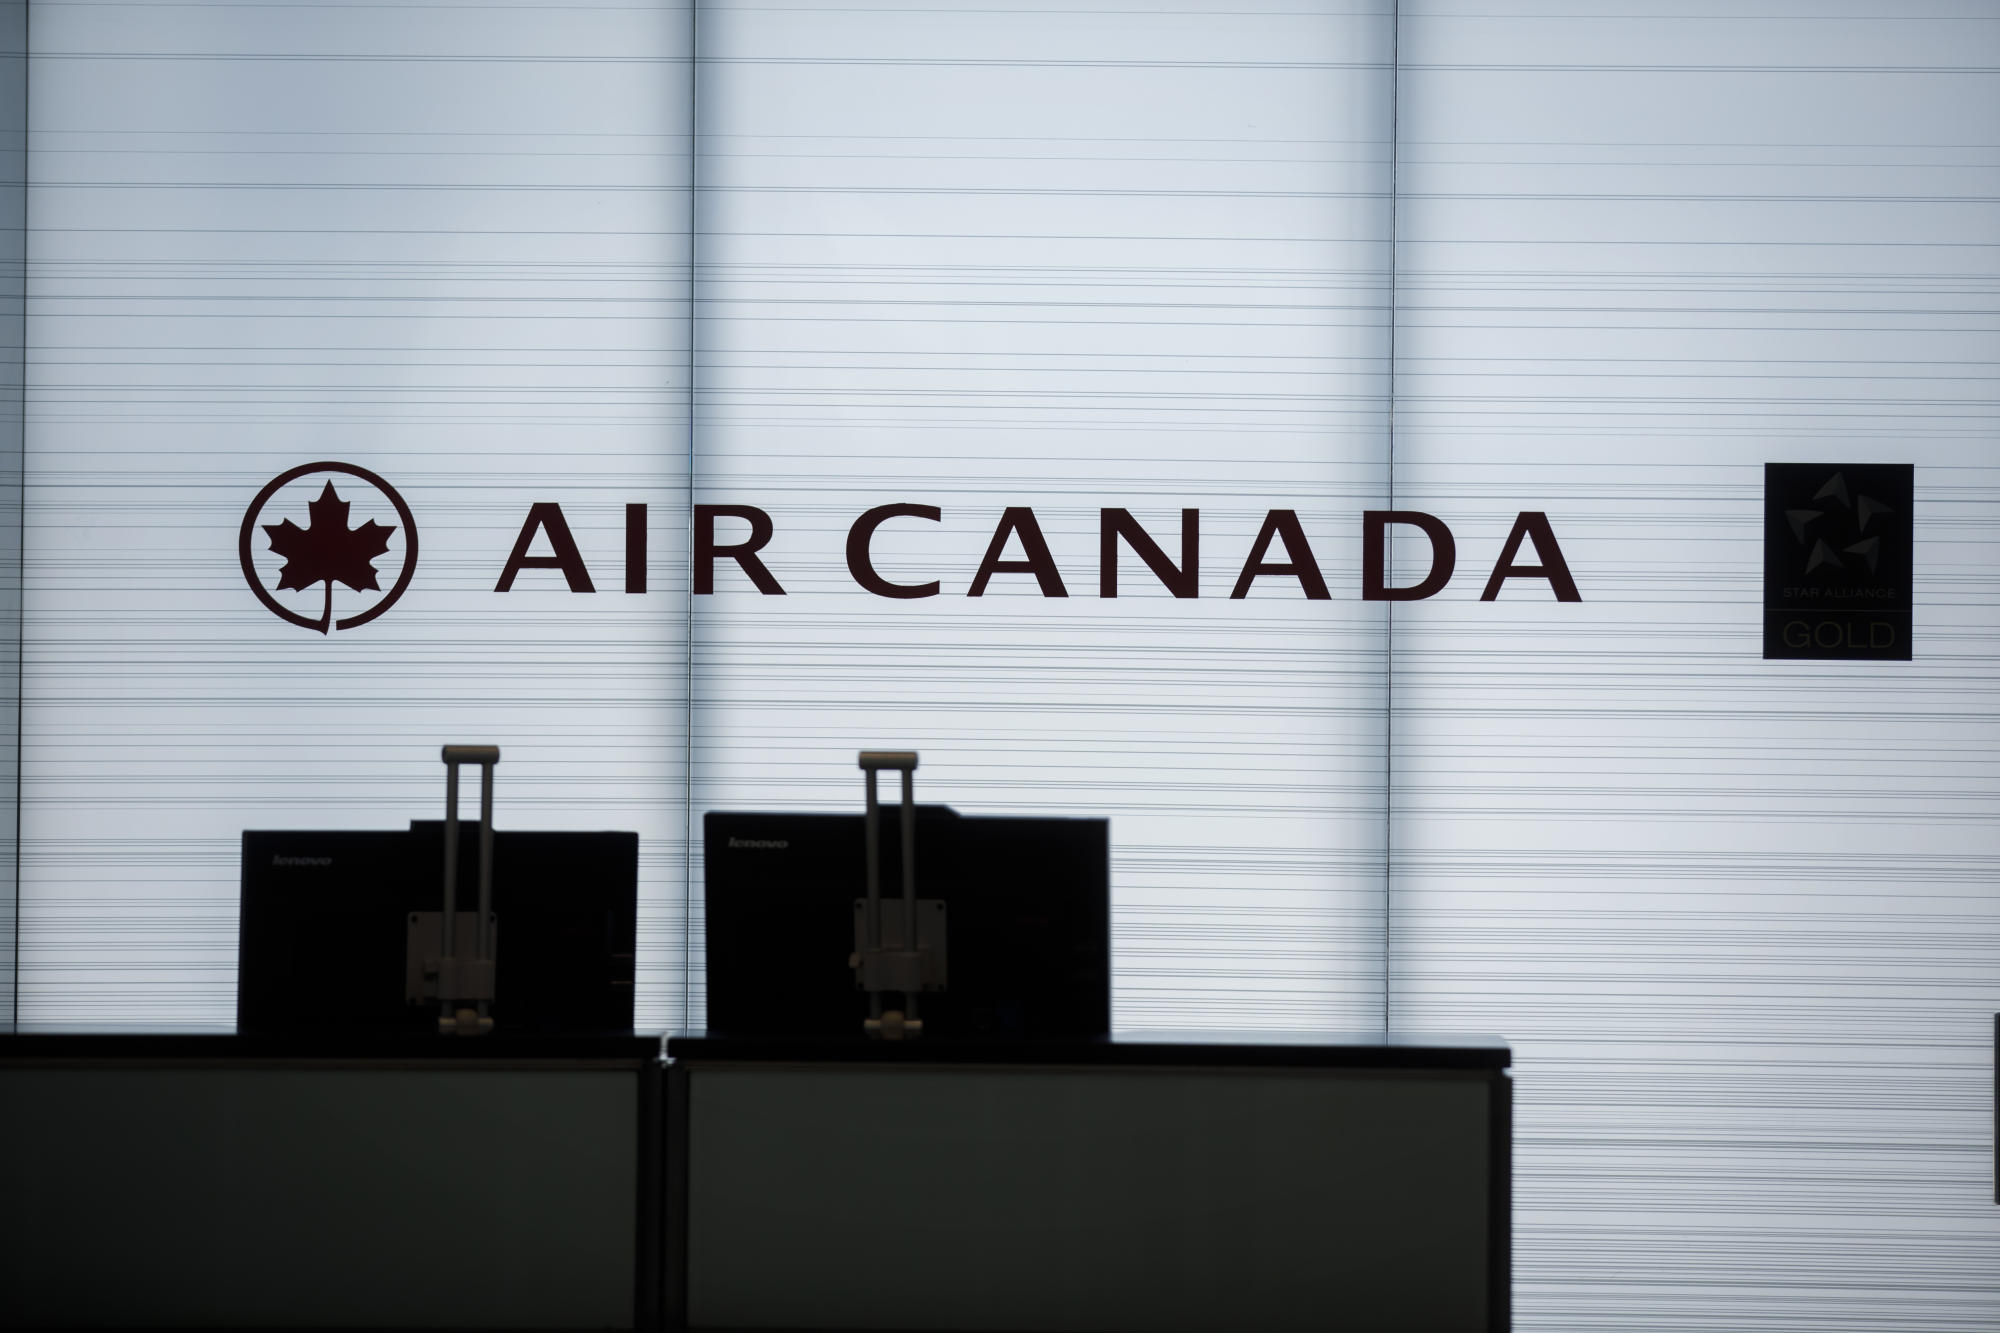 U.S. seeks US$25.6M fine for Air Canada's 'extreme delays' in giving refunds